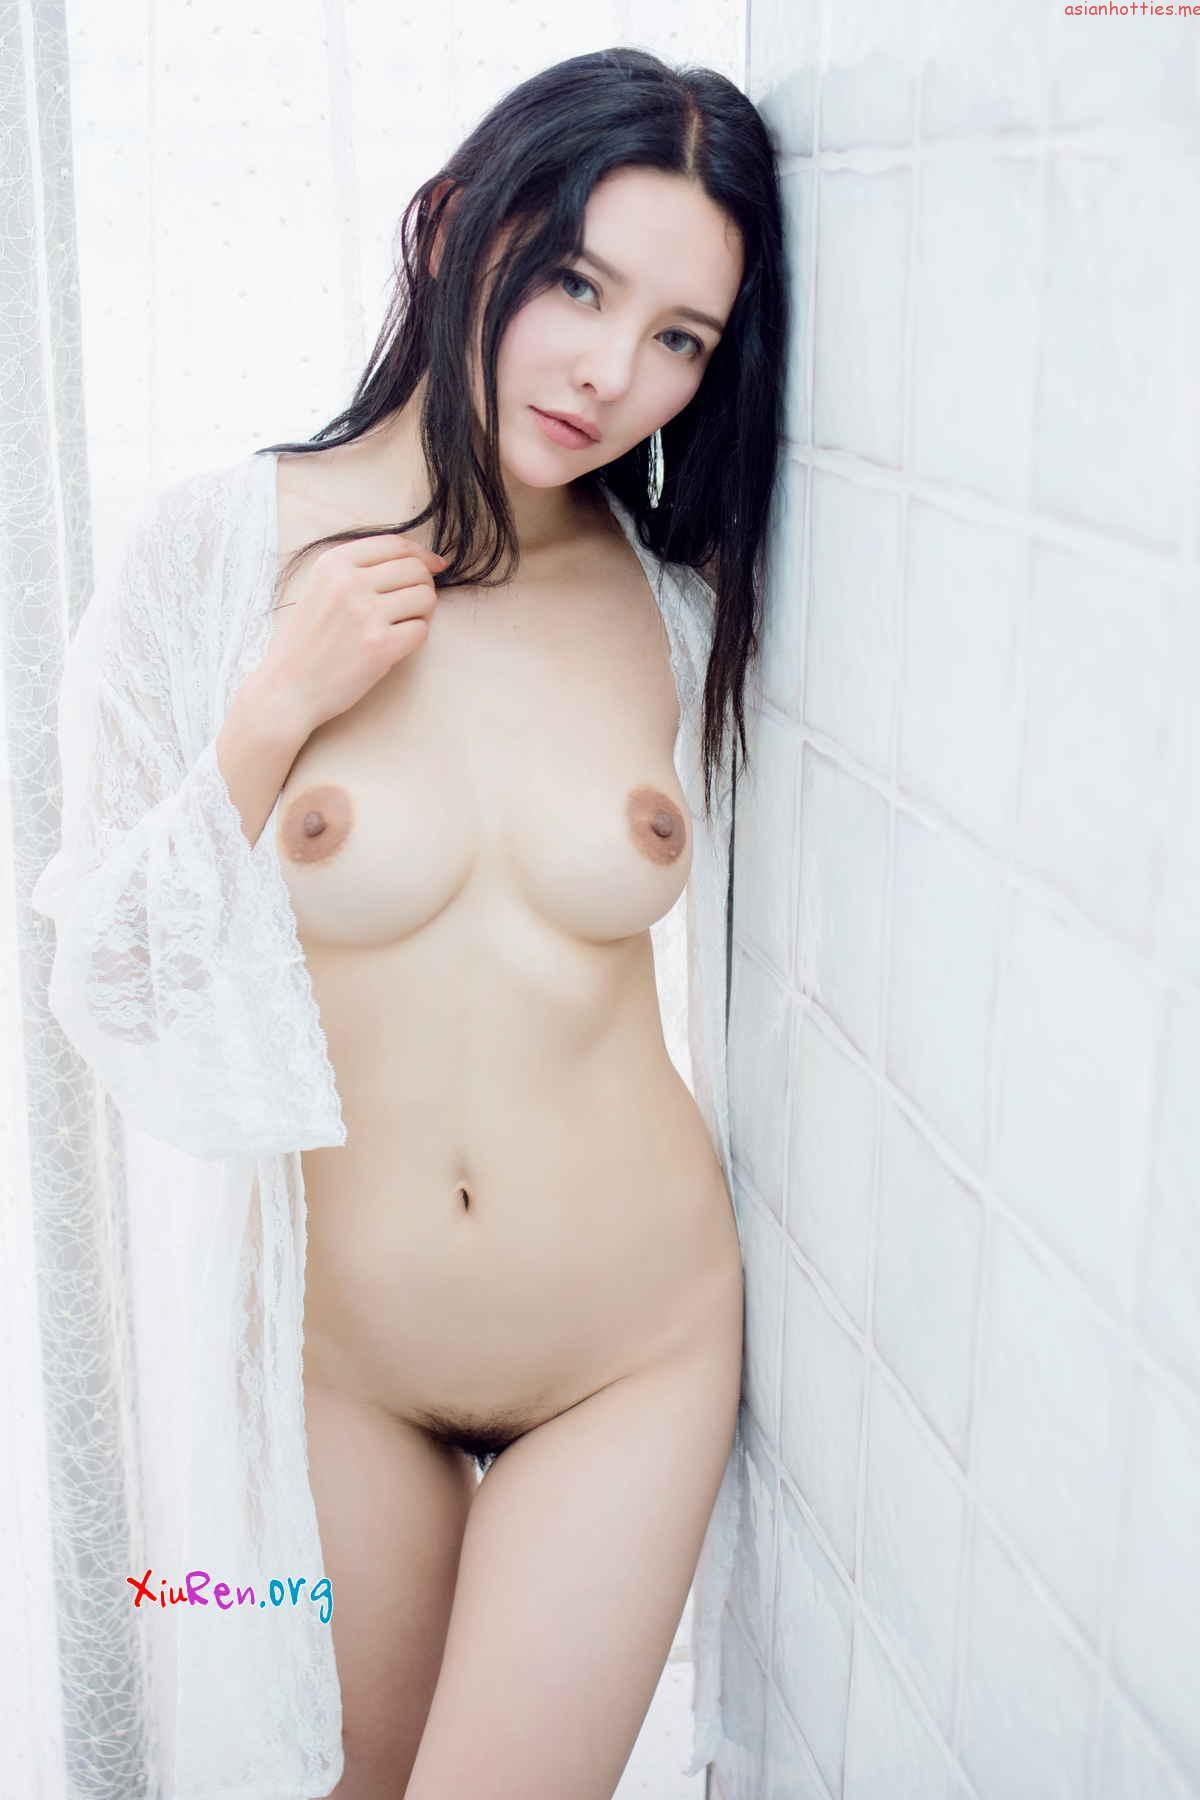 chinese nude pictures beautiful